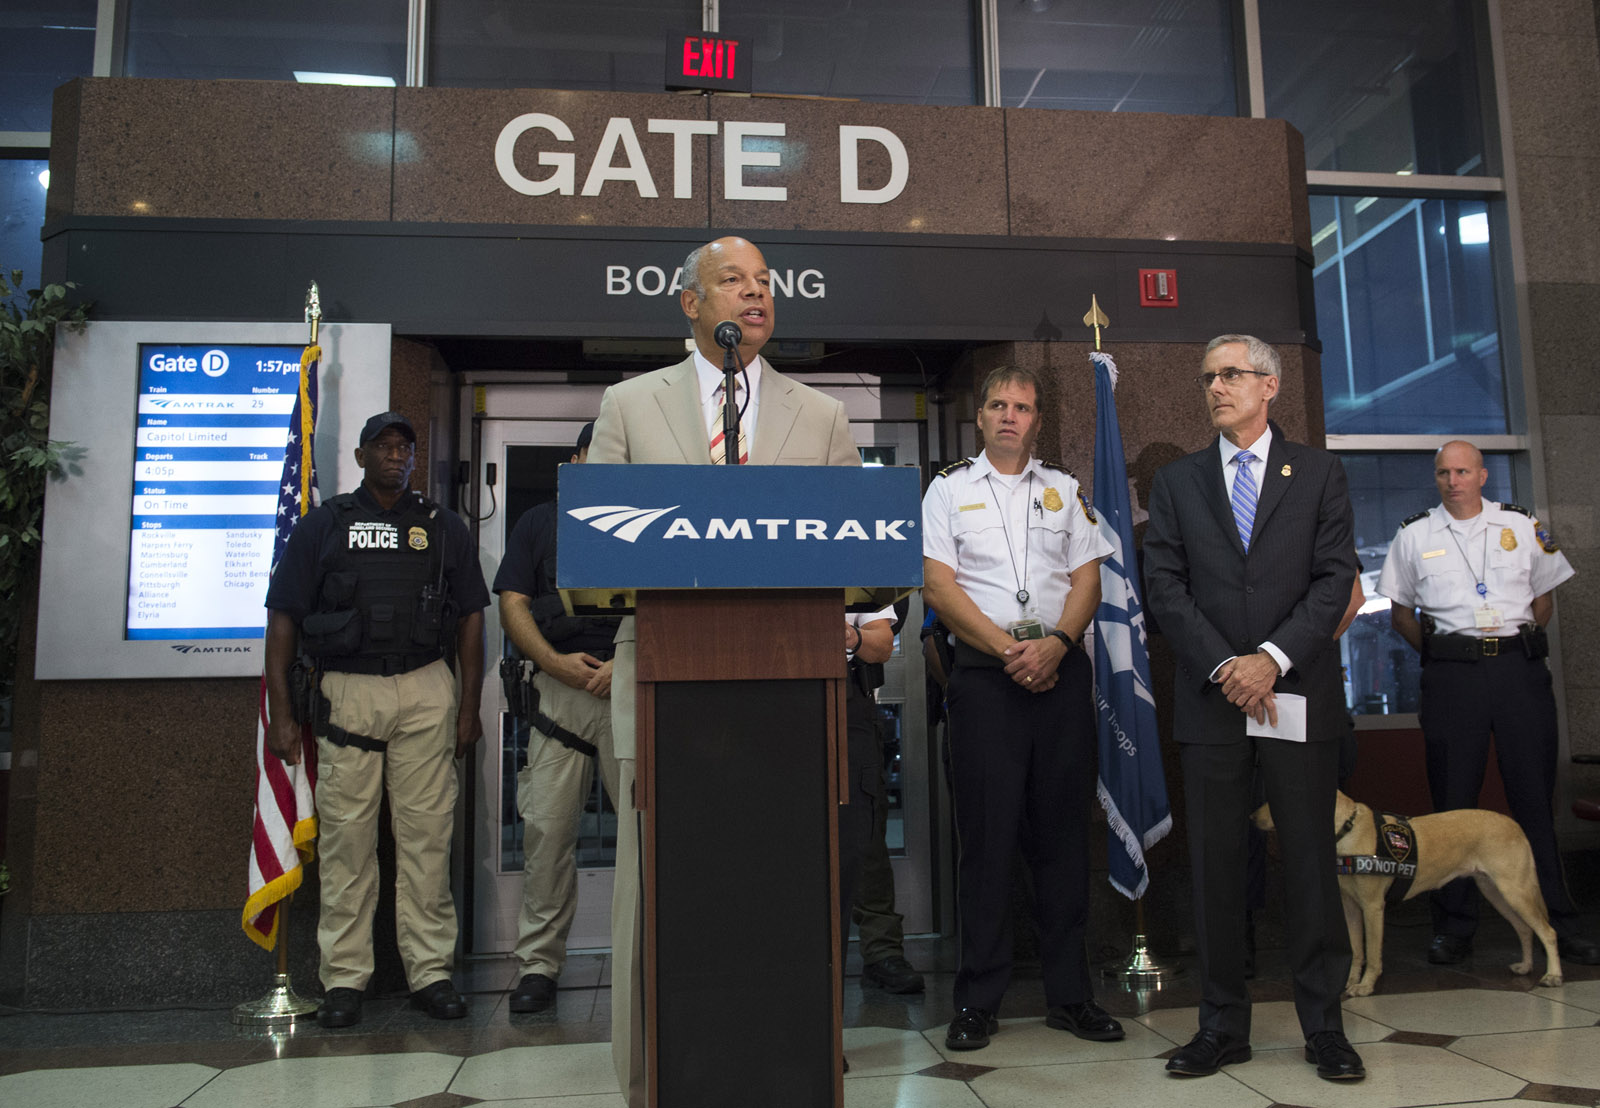 U.S. security officials say passenger trains are secure